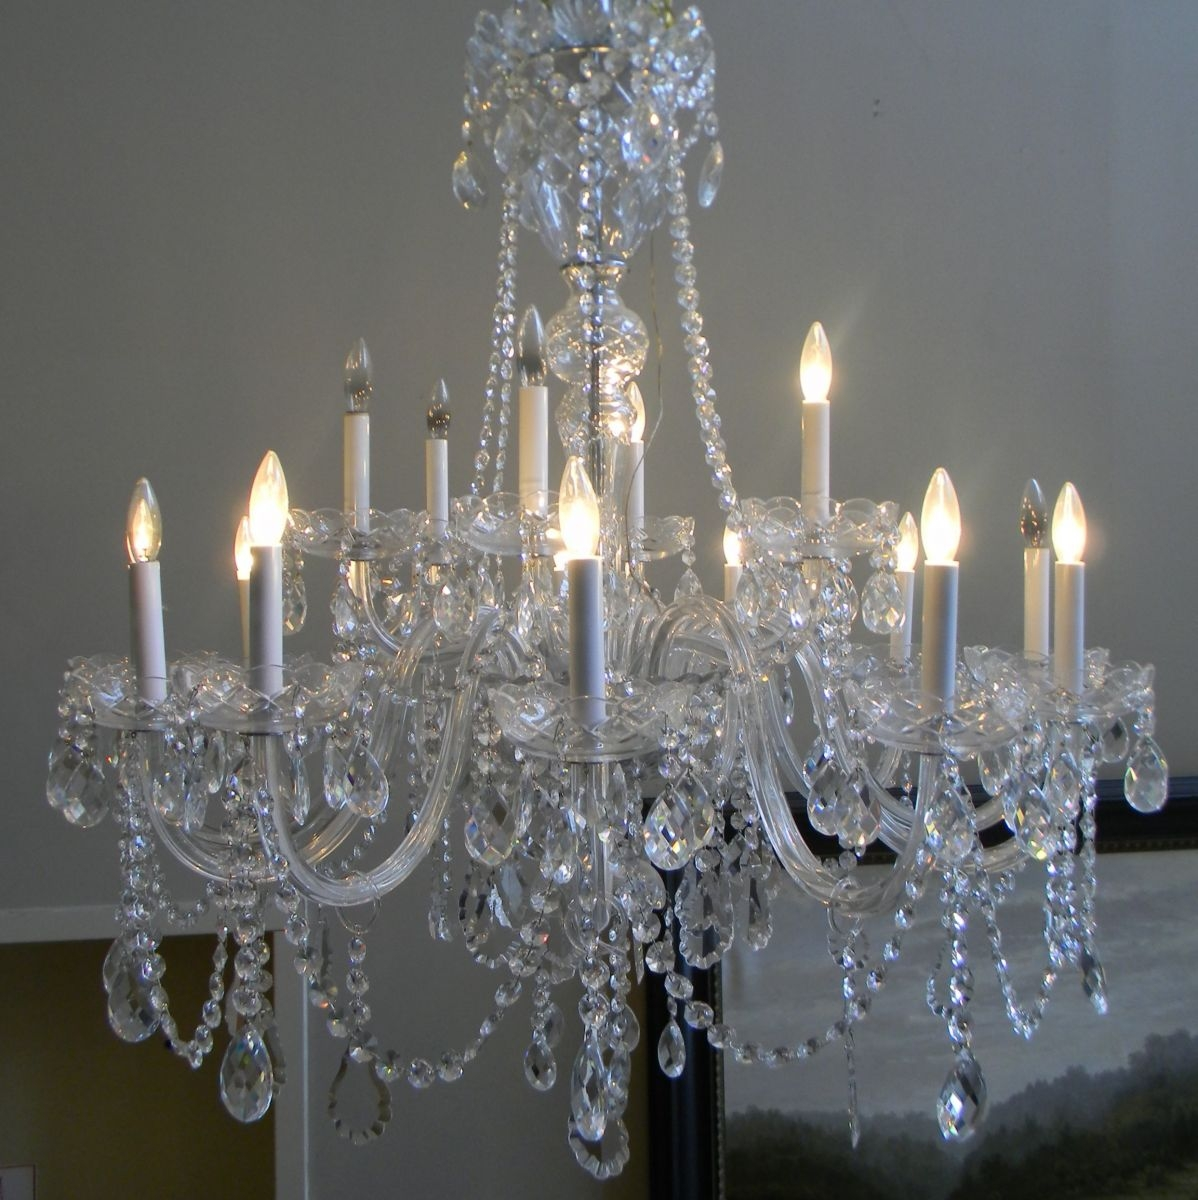 Gas Lamp Antiques Regarding Huge Crystal Chandeliers (View 11 of 15)